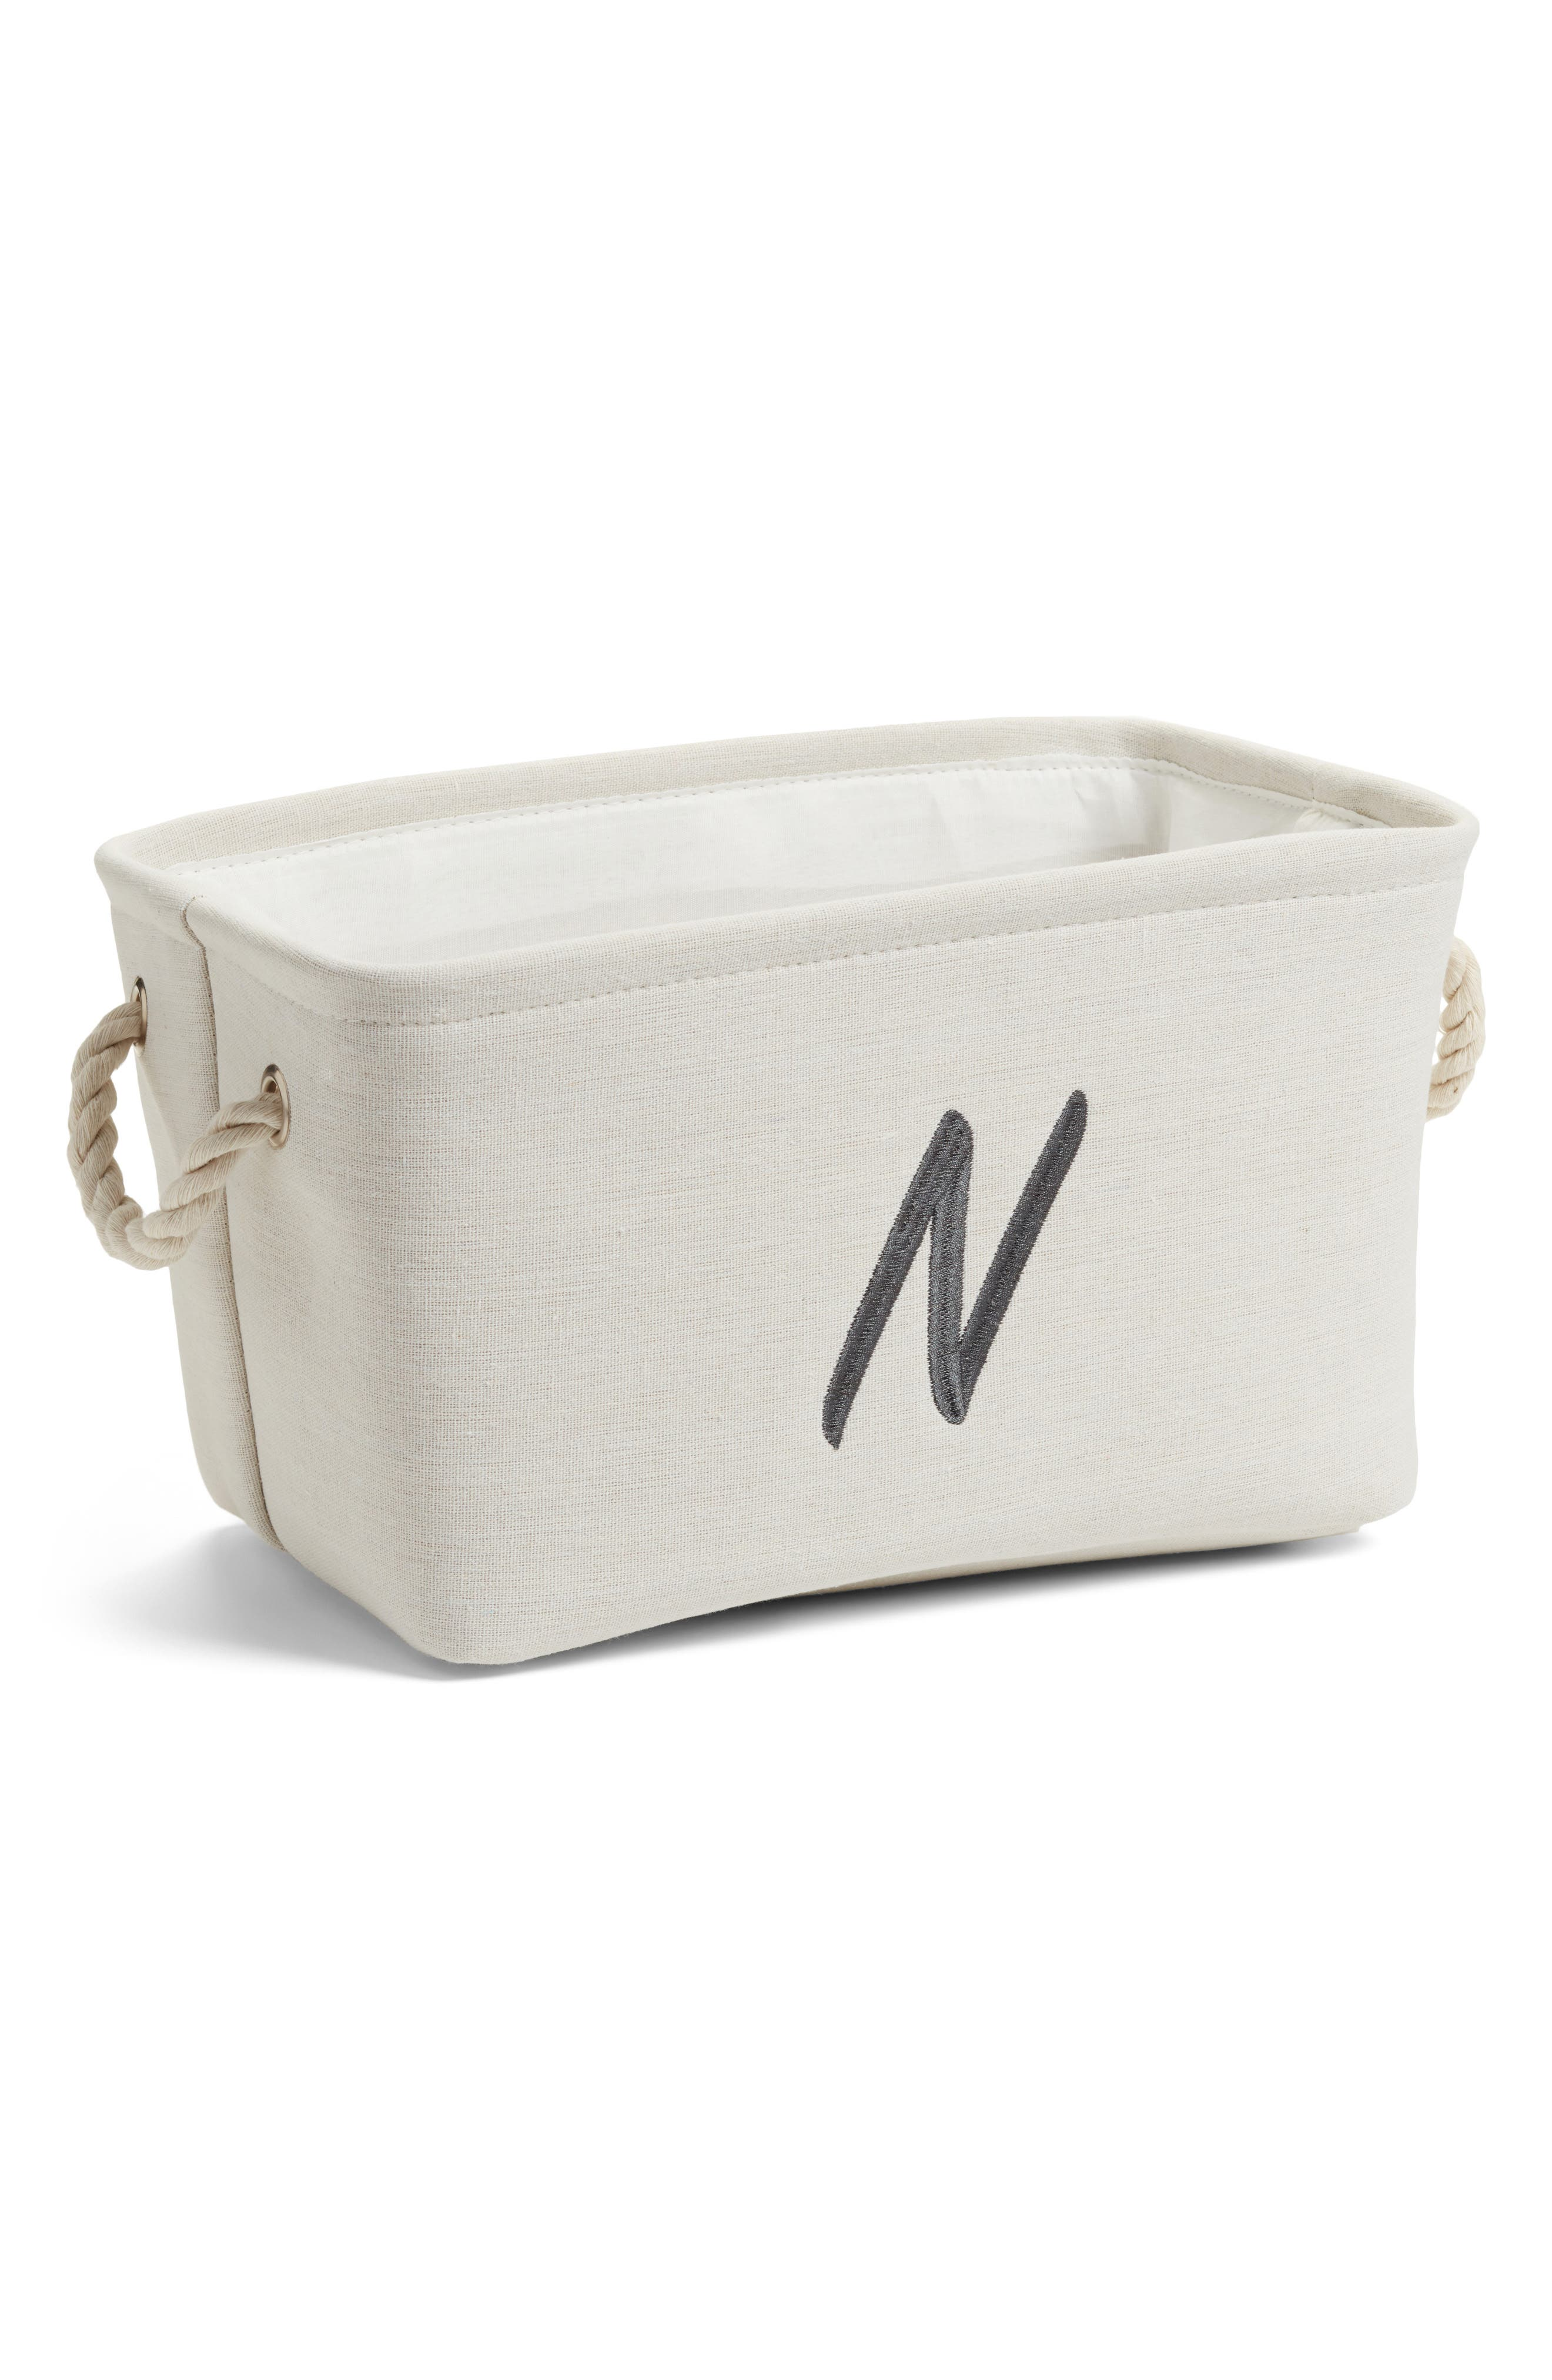 Initial Monogram Storage Basket,                             Main thumbnail 1, color,                             Ivory-N